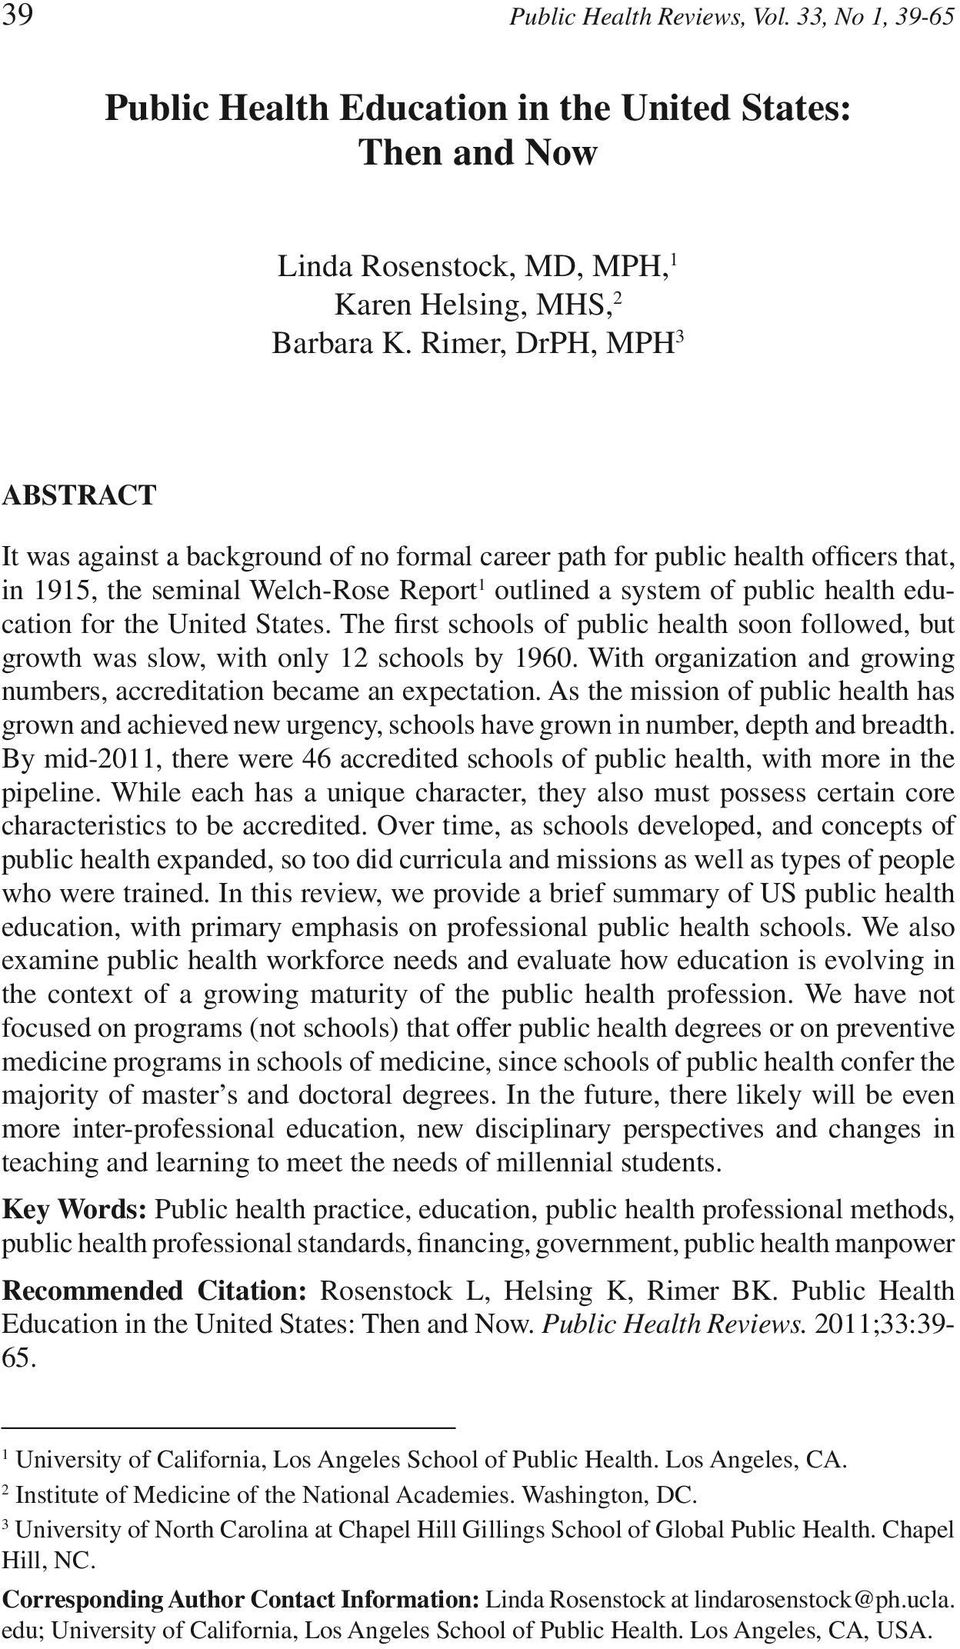 for the United States. The first schools of public health soon followed, but growth was slow, with only 12 schools by 1960. With organization and growing numbers, accreditation became an expectation.